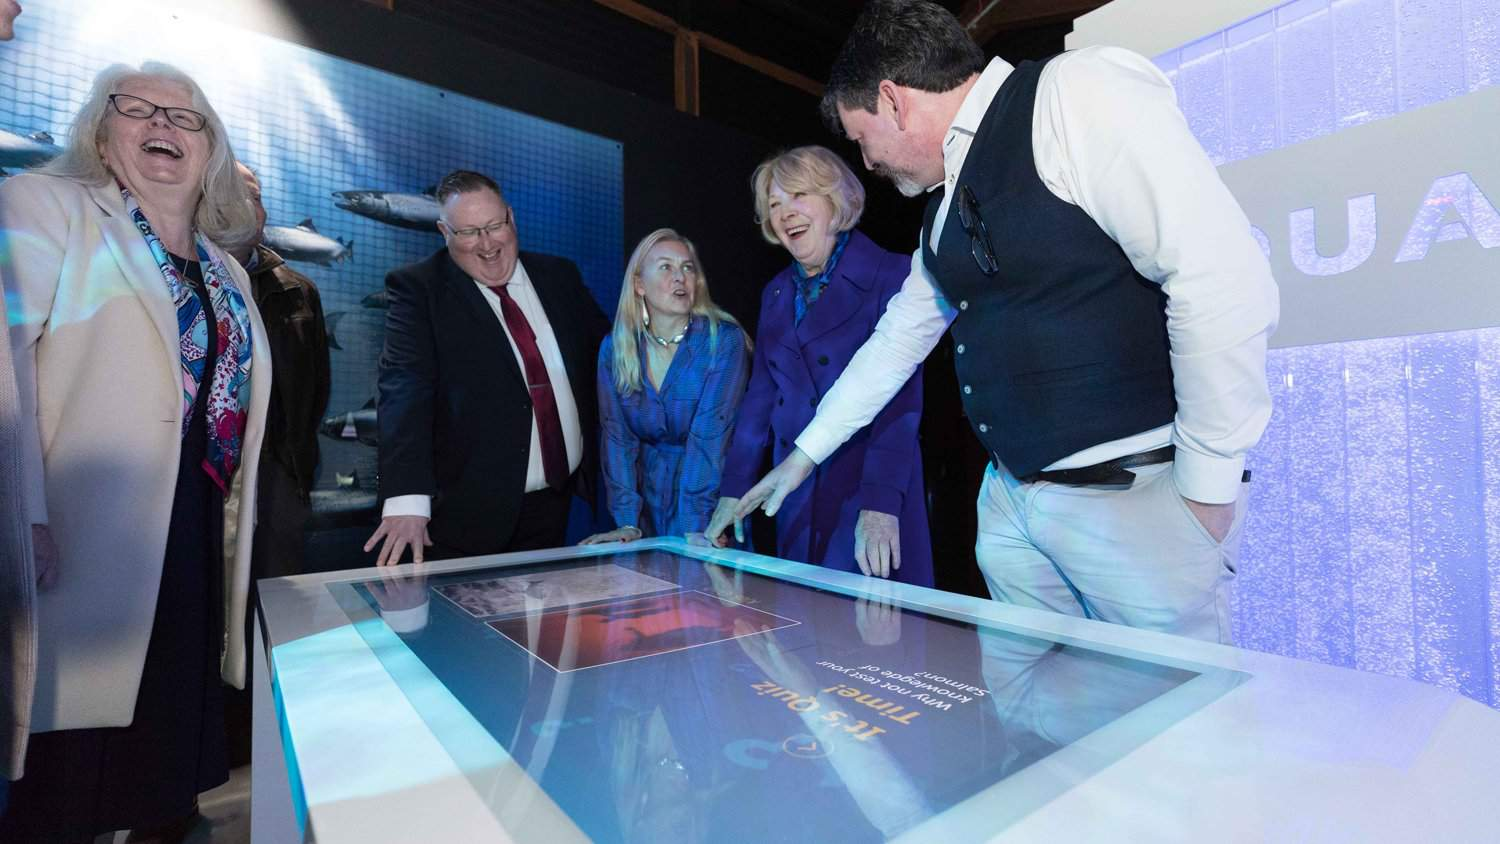 Burren Smokehouse, Taste the Atlantic - Salmon Experience with a 55 Inch Sleek Multi Touch Table